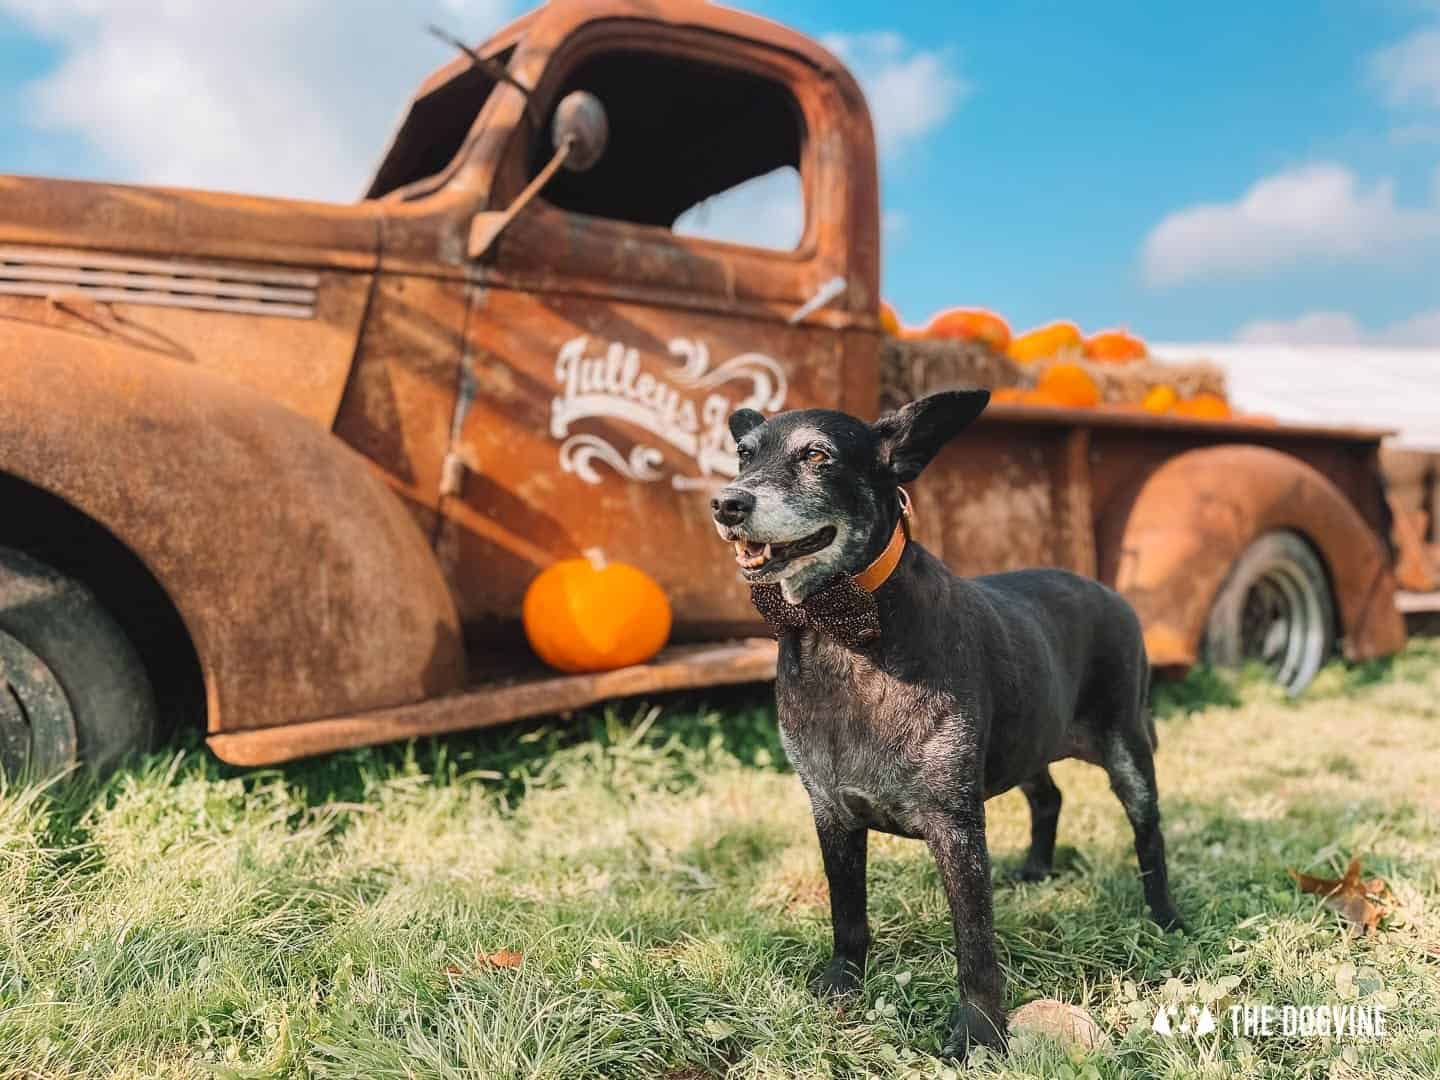 Tulleys Farm Pumpkin Picking A Fun Thing To Do With Your Dog